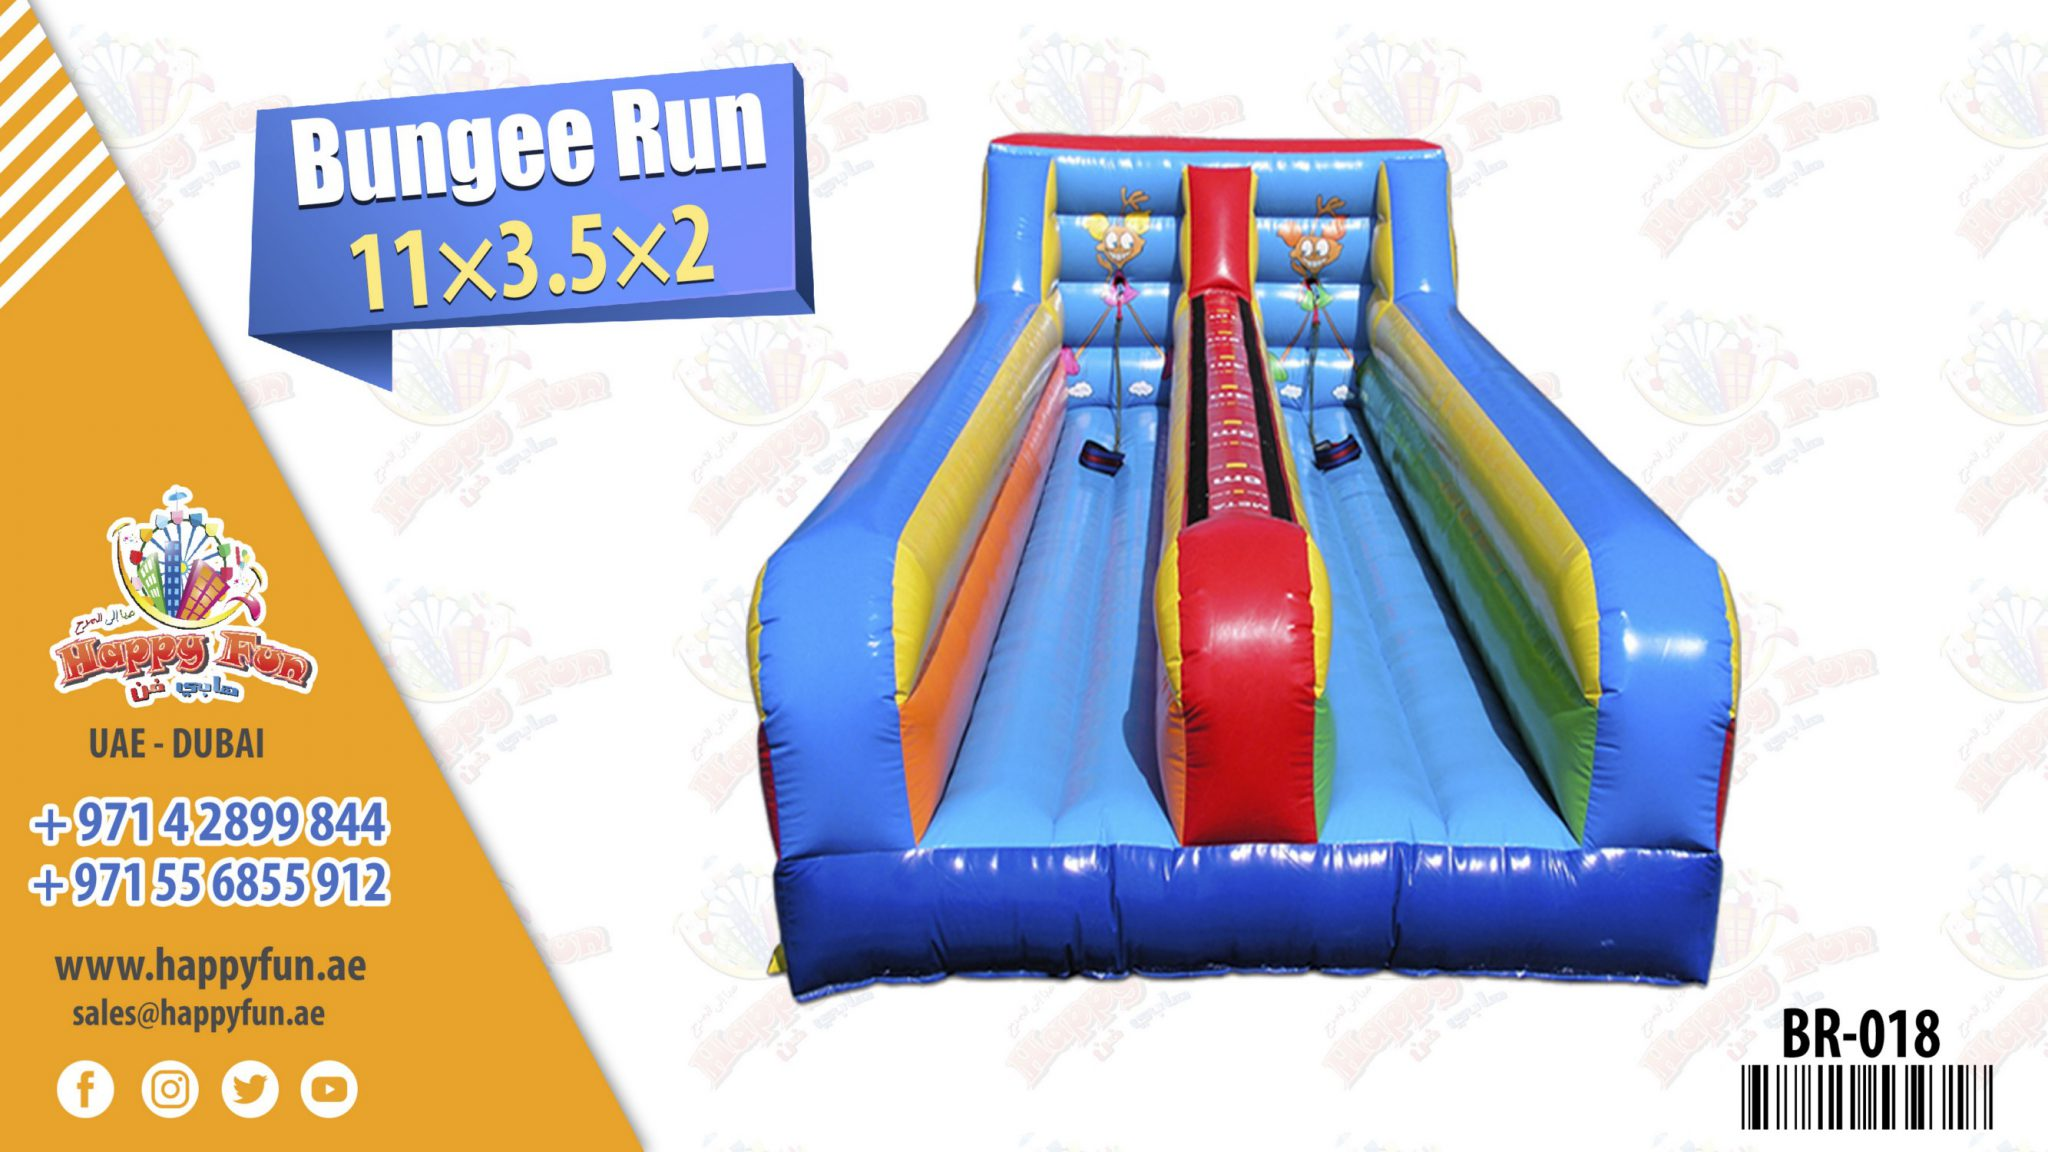 Happy Fun - Bungee run